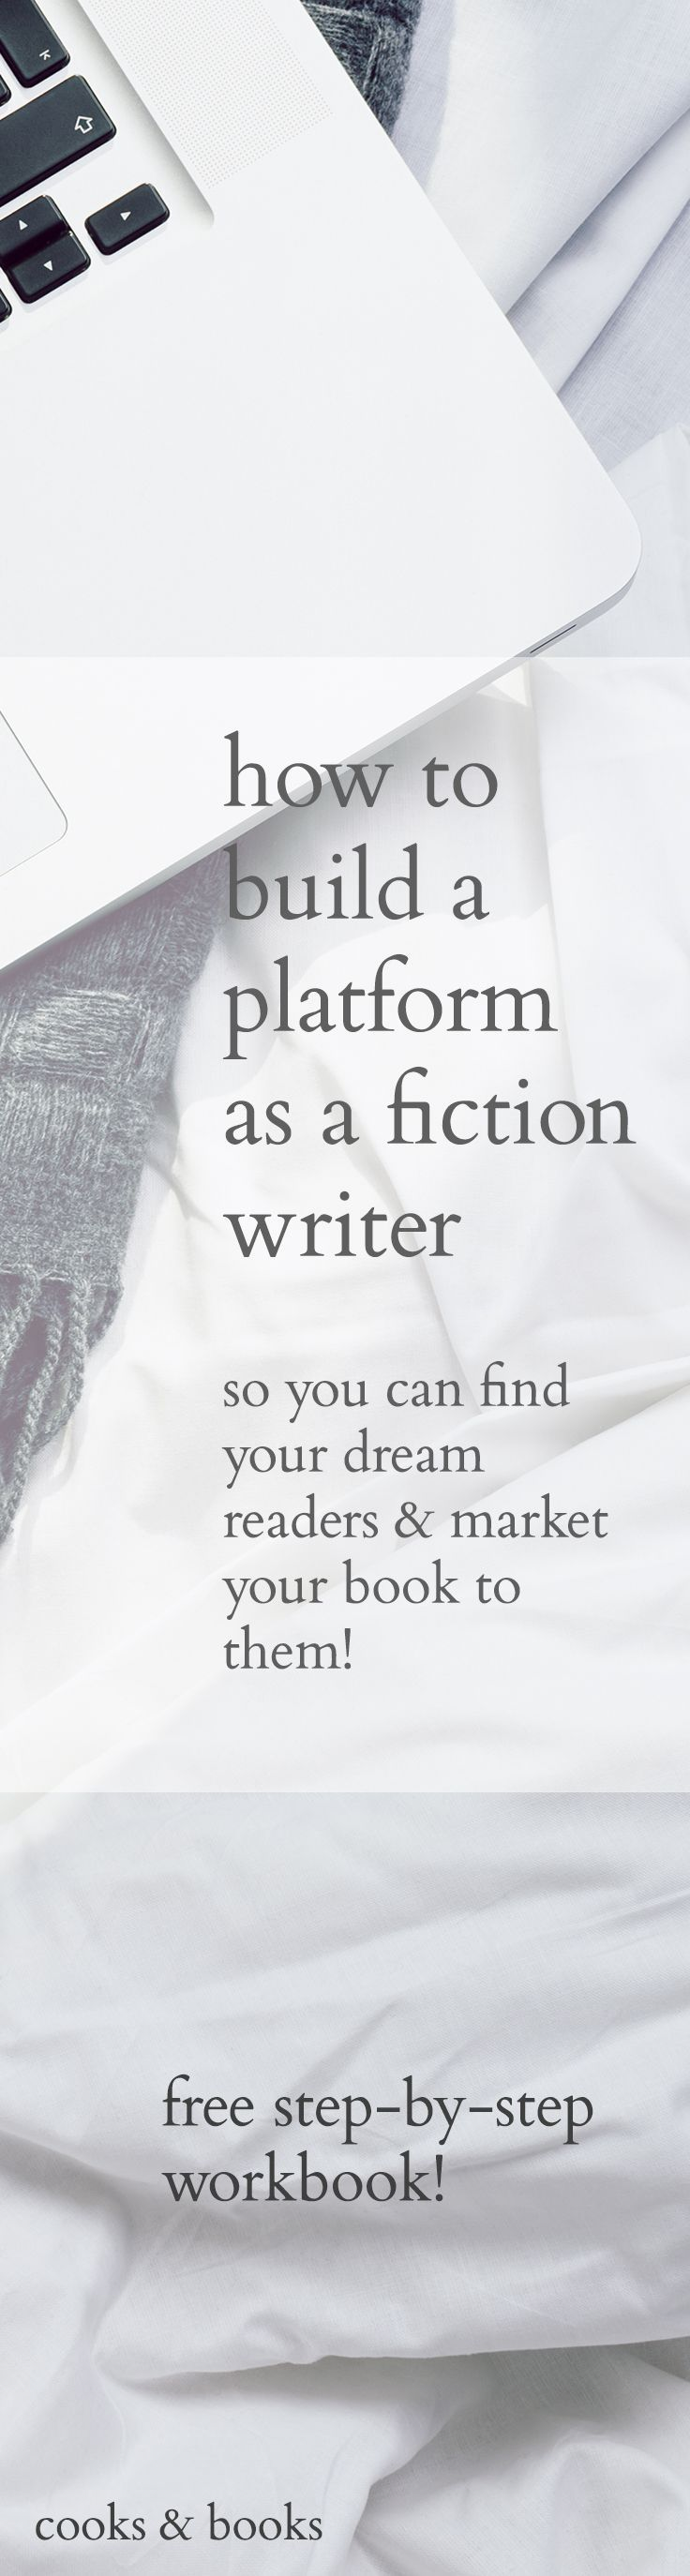 A free workbook to show you how to build a platform as a novelist so you can sell more books. It takes you step-by-step to show you what to write about, how to find readers, how to increase engagement, and how to build a fun and vibrant community! http://j.mp/208PF2Chttp://cooksplusbooks.com/2016/03/15/how-to-build-a-platform-as-a-fiction-writer-free-workbook: